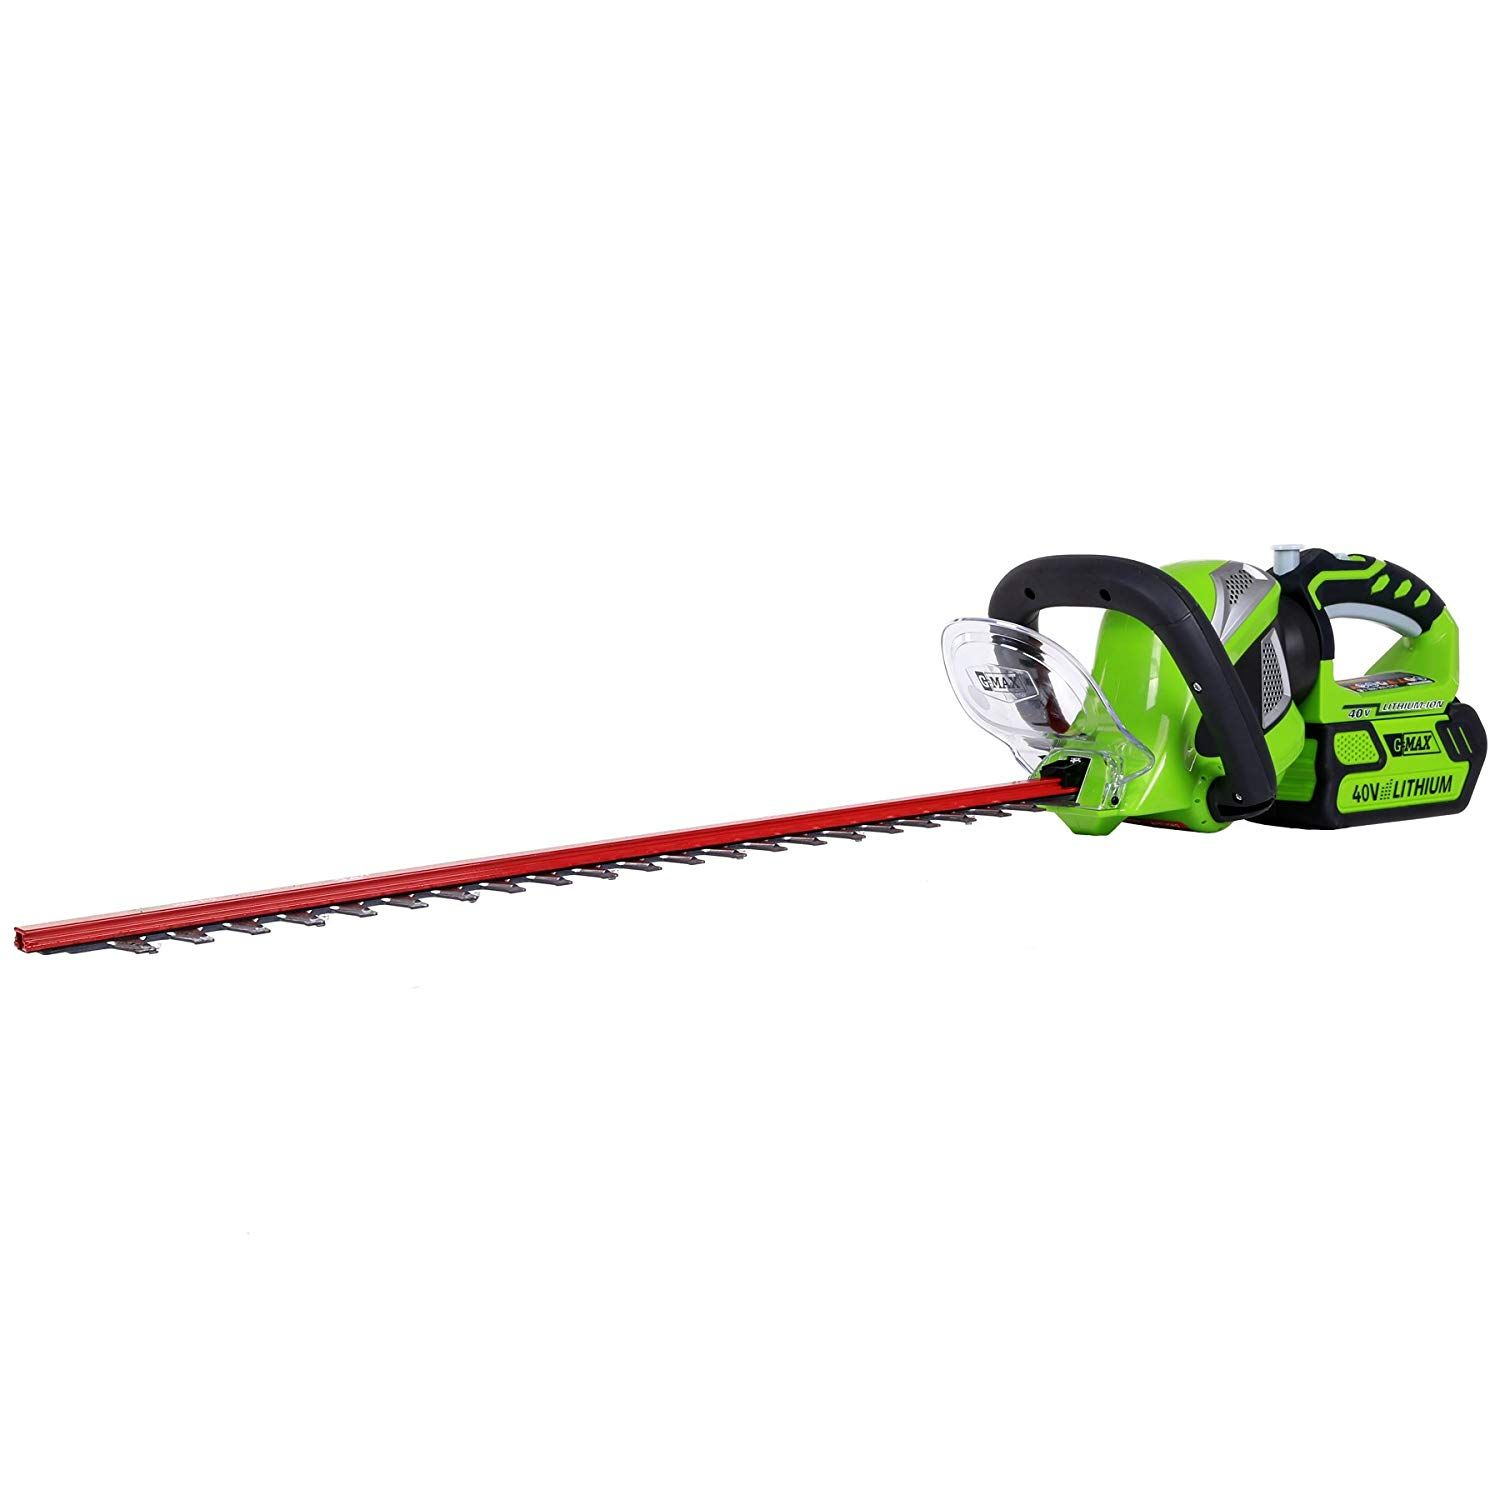 7 Best Cordless Electric Hedge Trimmers to Buy in 2018